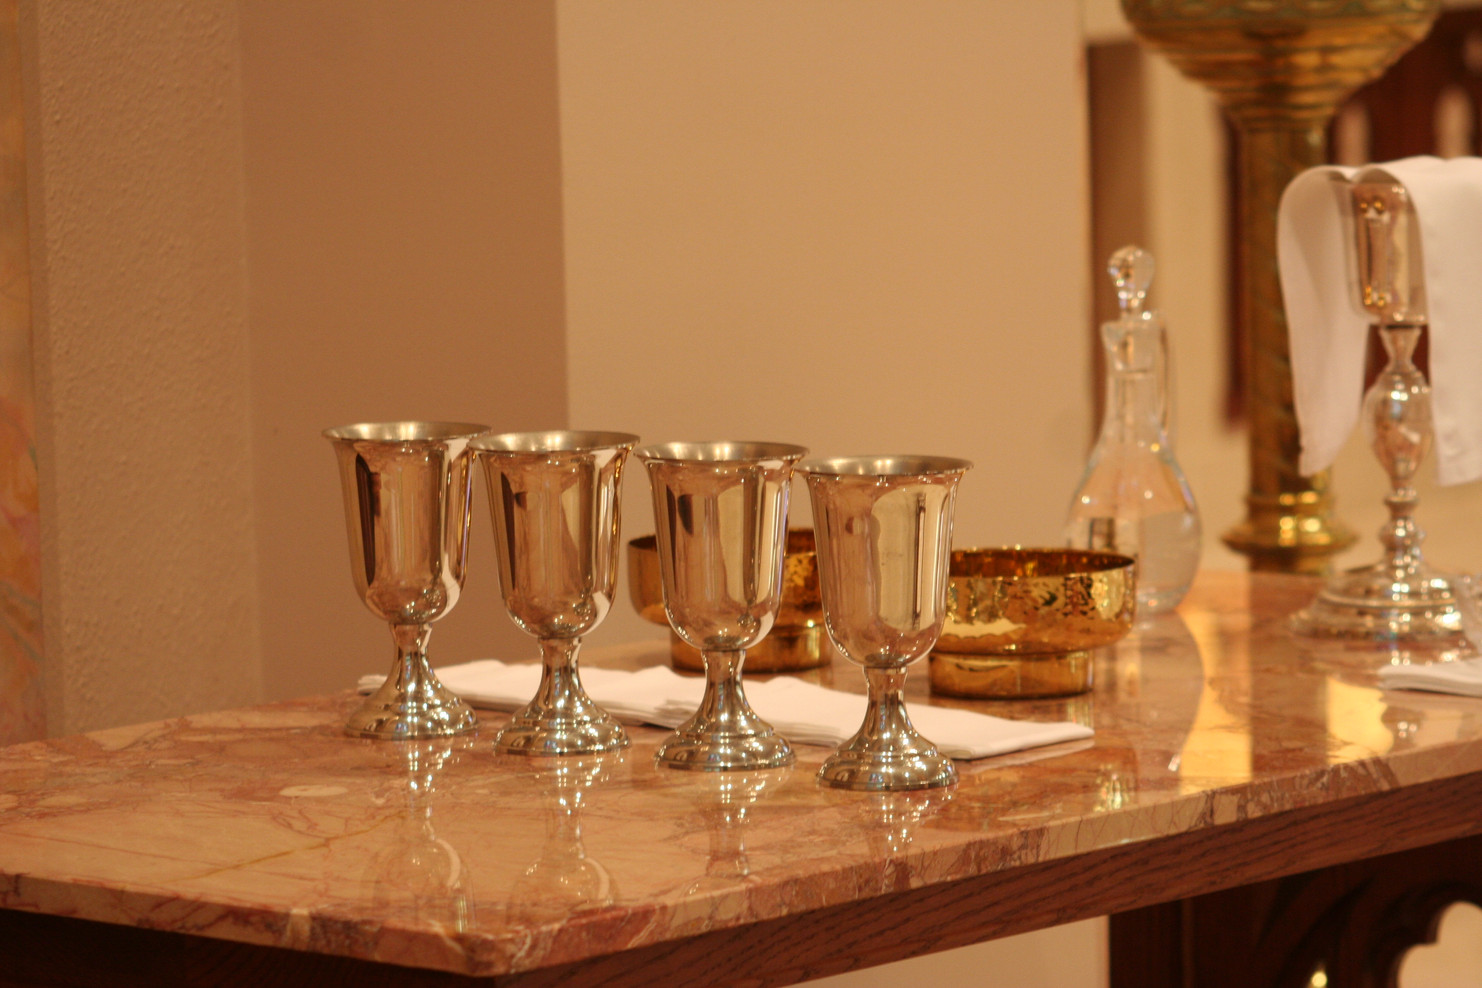 """The Eucharist is the """"source and summit"""" of our lives as Catholic Christians. We are called as Sisters to """"participate daily, when possible, in the Eucharistic celebration and sacramental life of the Church, entering more fully into the Paschal Mystery of the risen Christ."""""""